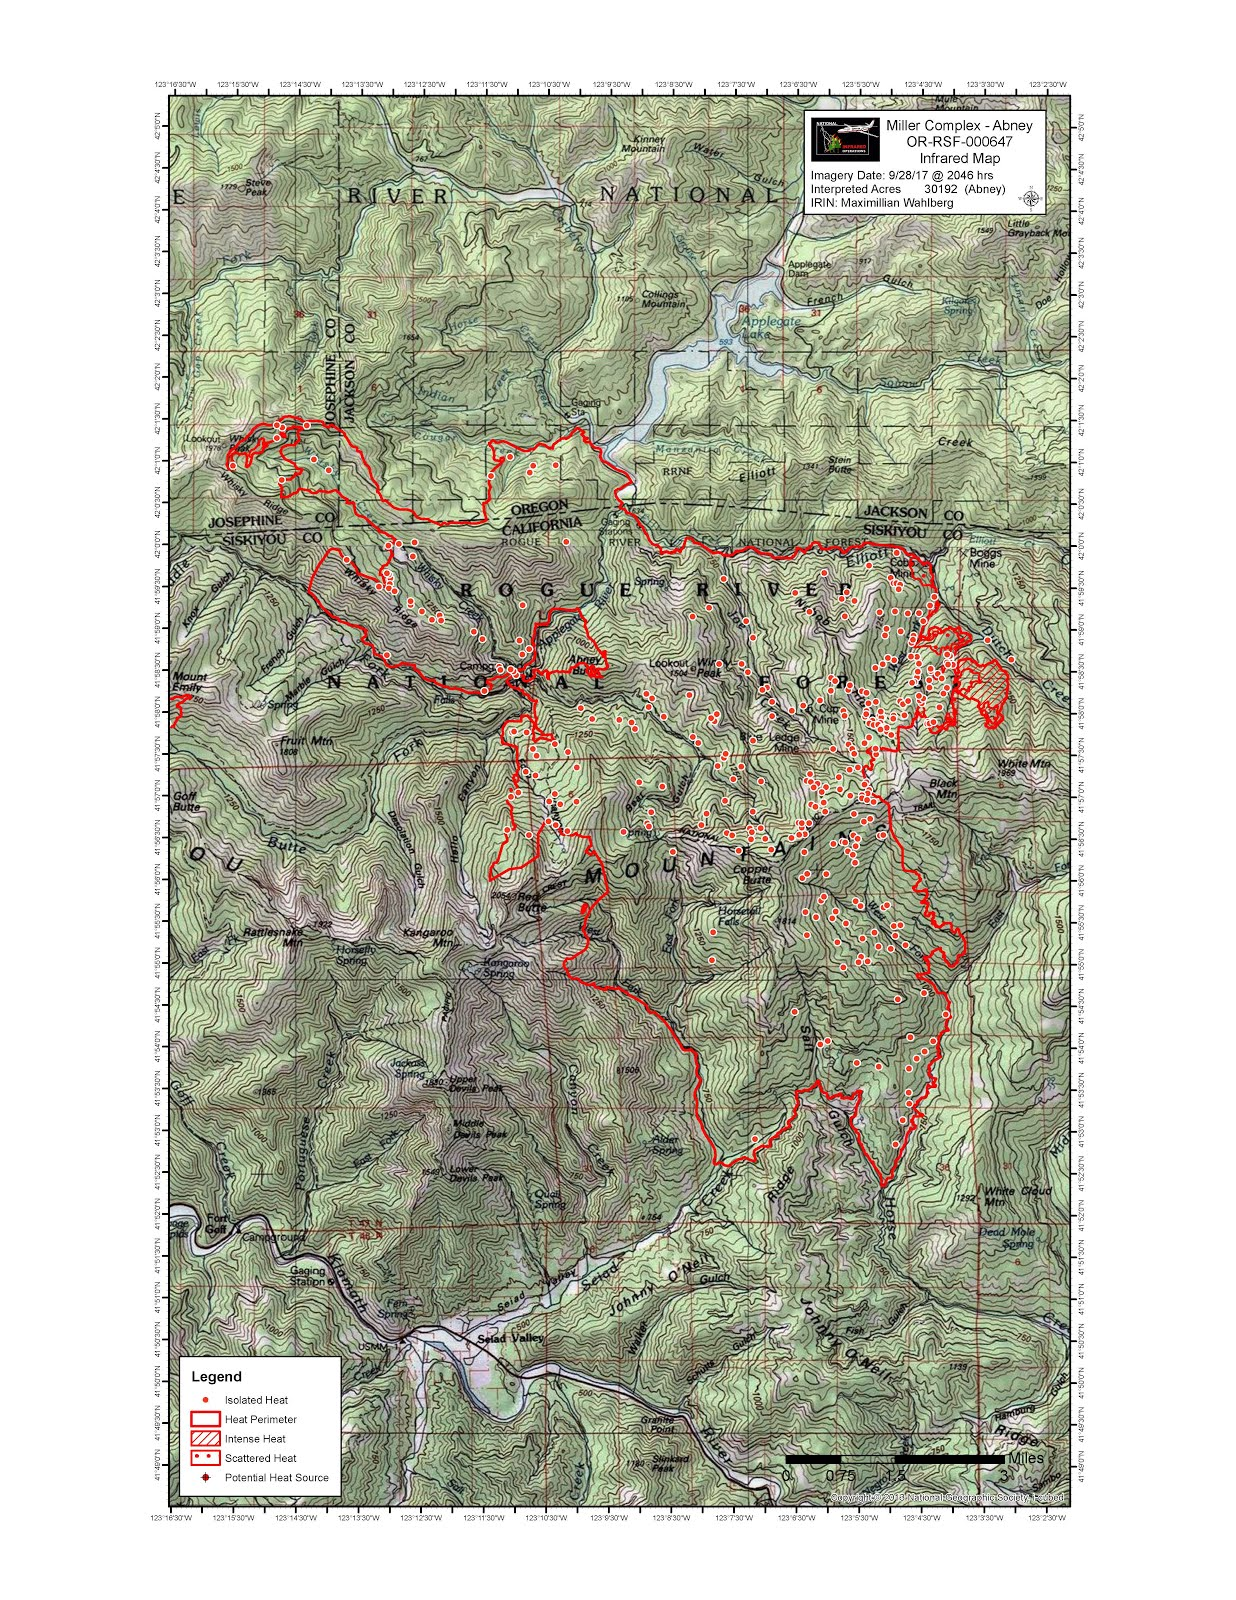 infrared map of abney fire